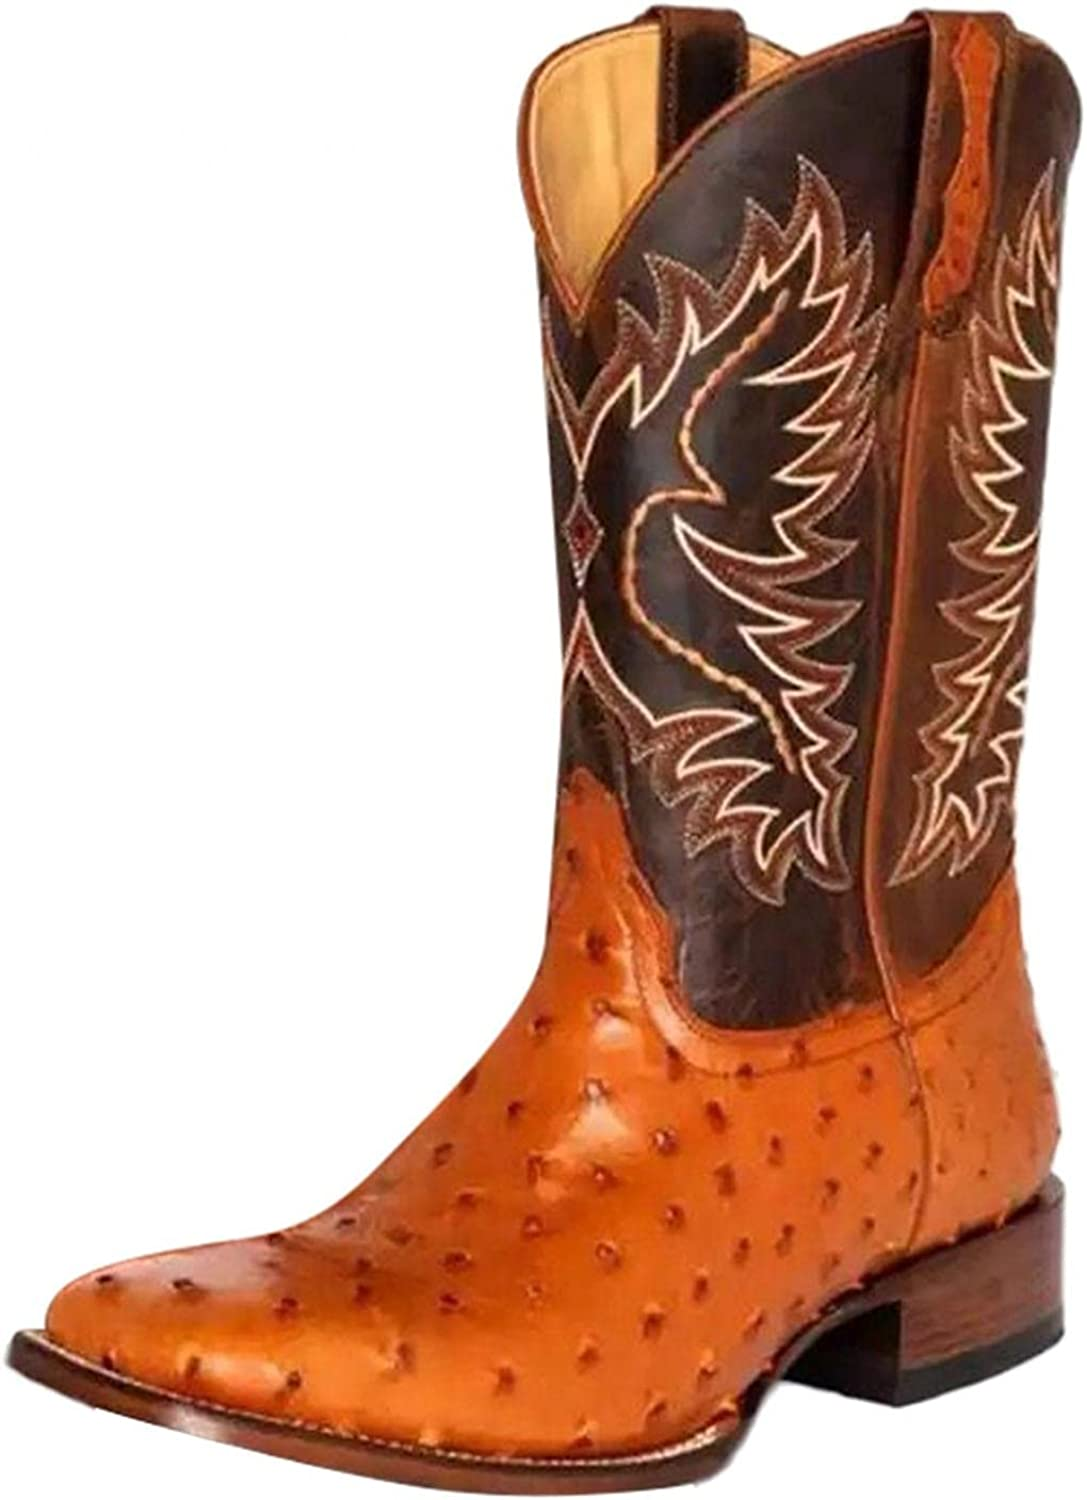 Sales for sale Masbird Booties Womens Cowboy Zip Po Embroidery Regular discount Boot Western